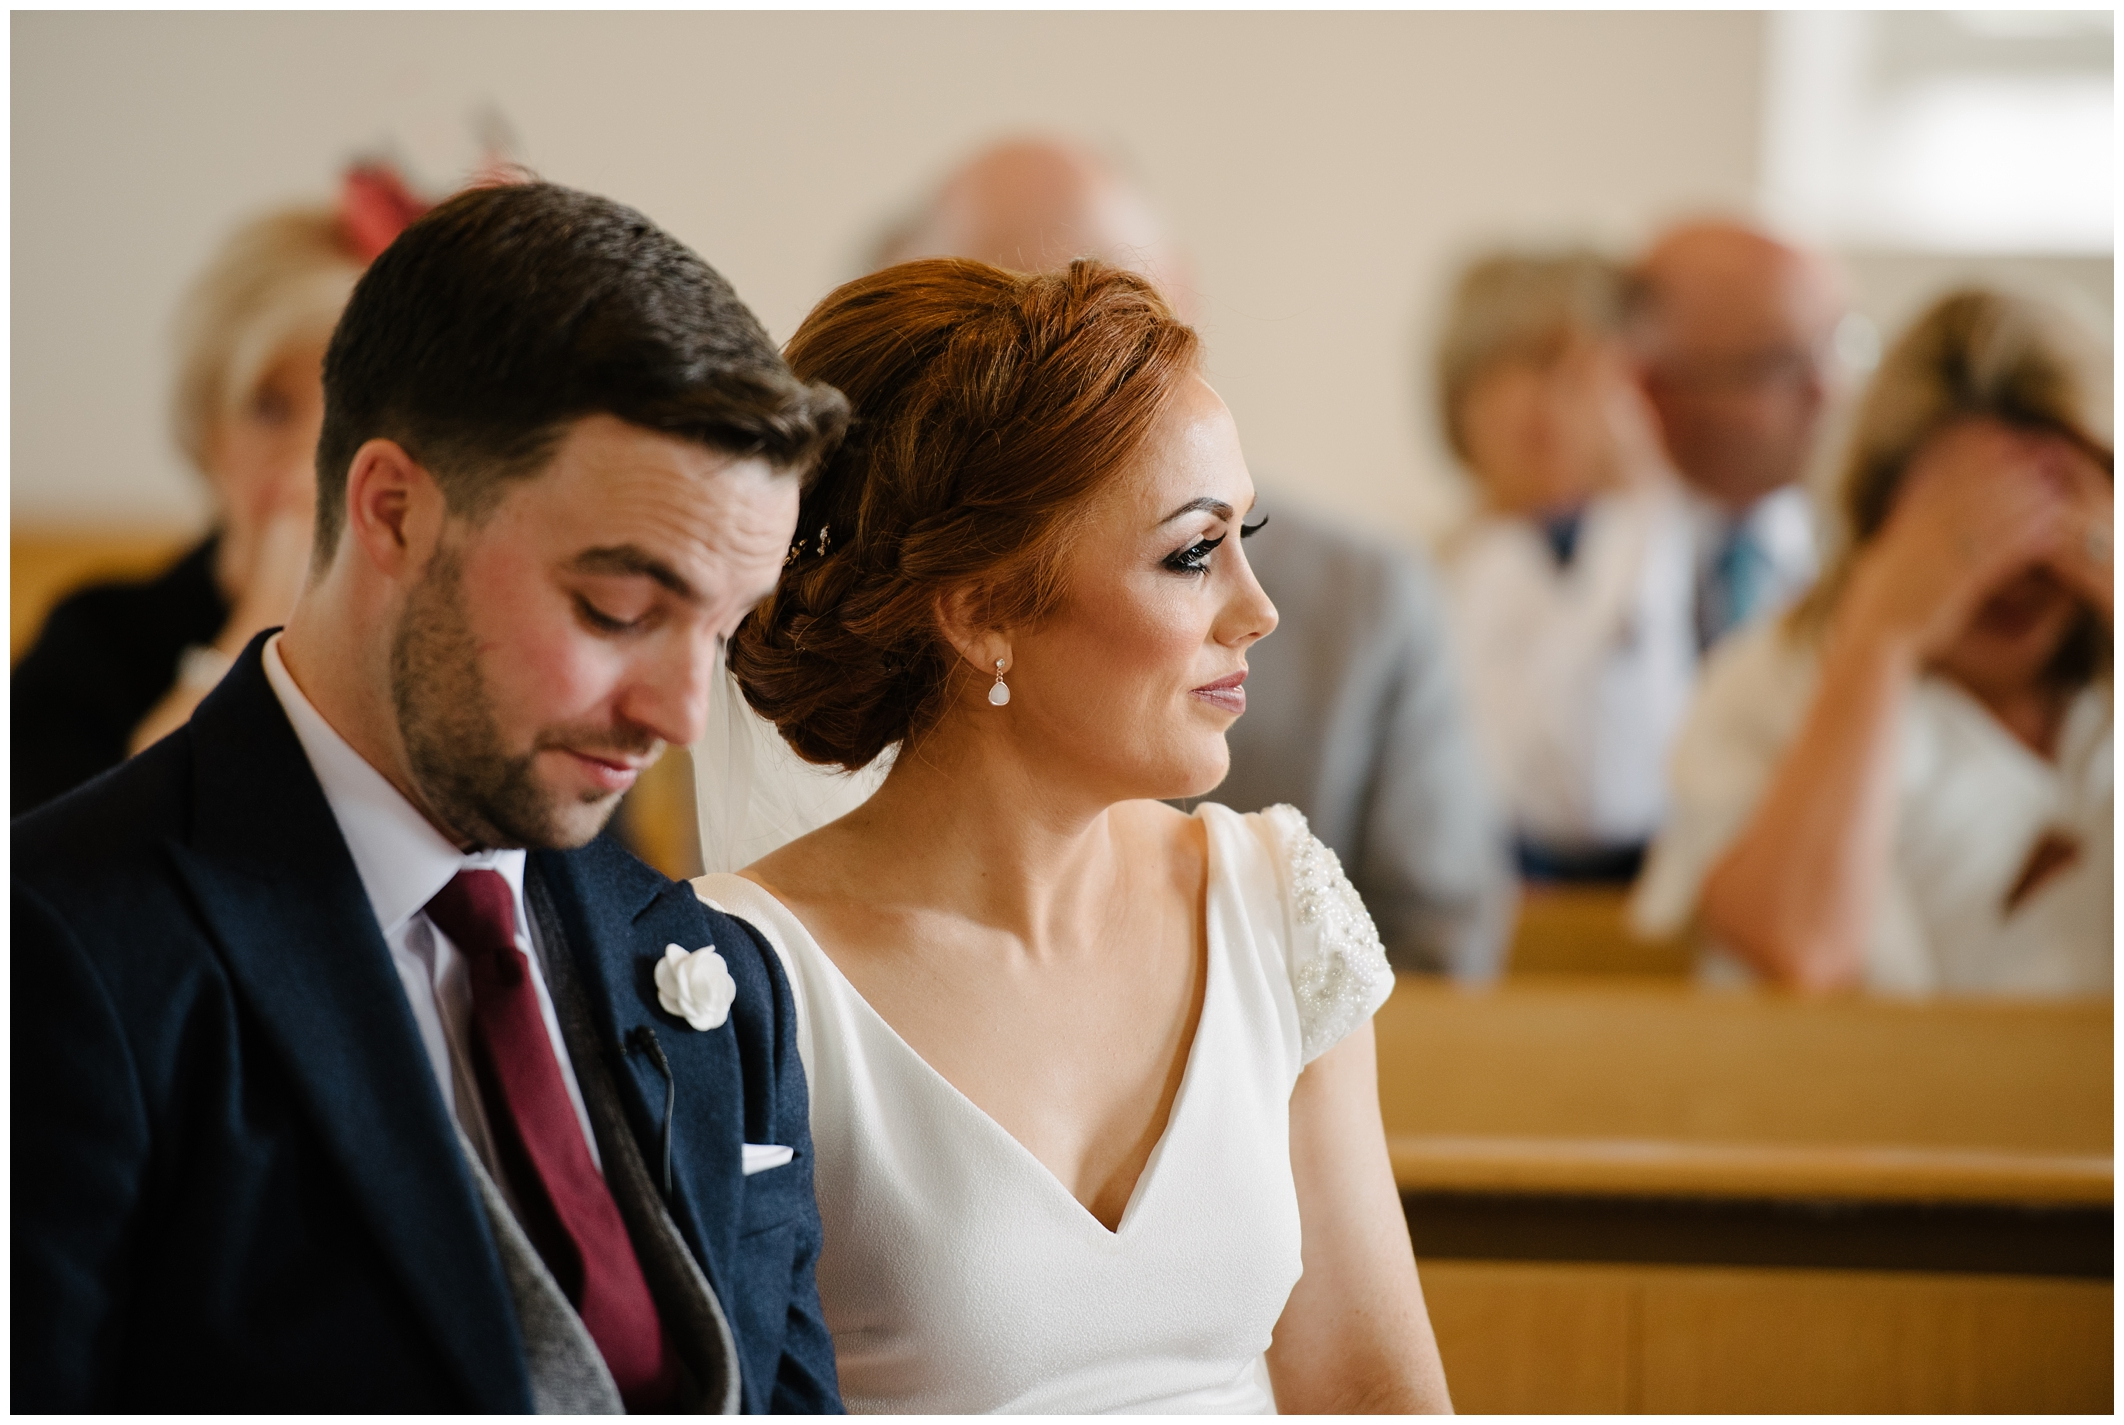 sinead_emmet_farnham_estate_wedding_jude_browne_photography_0071.jpg